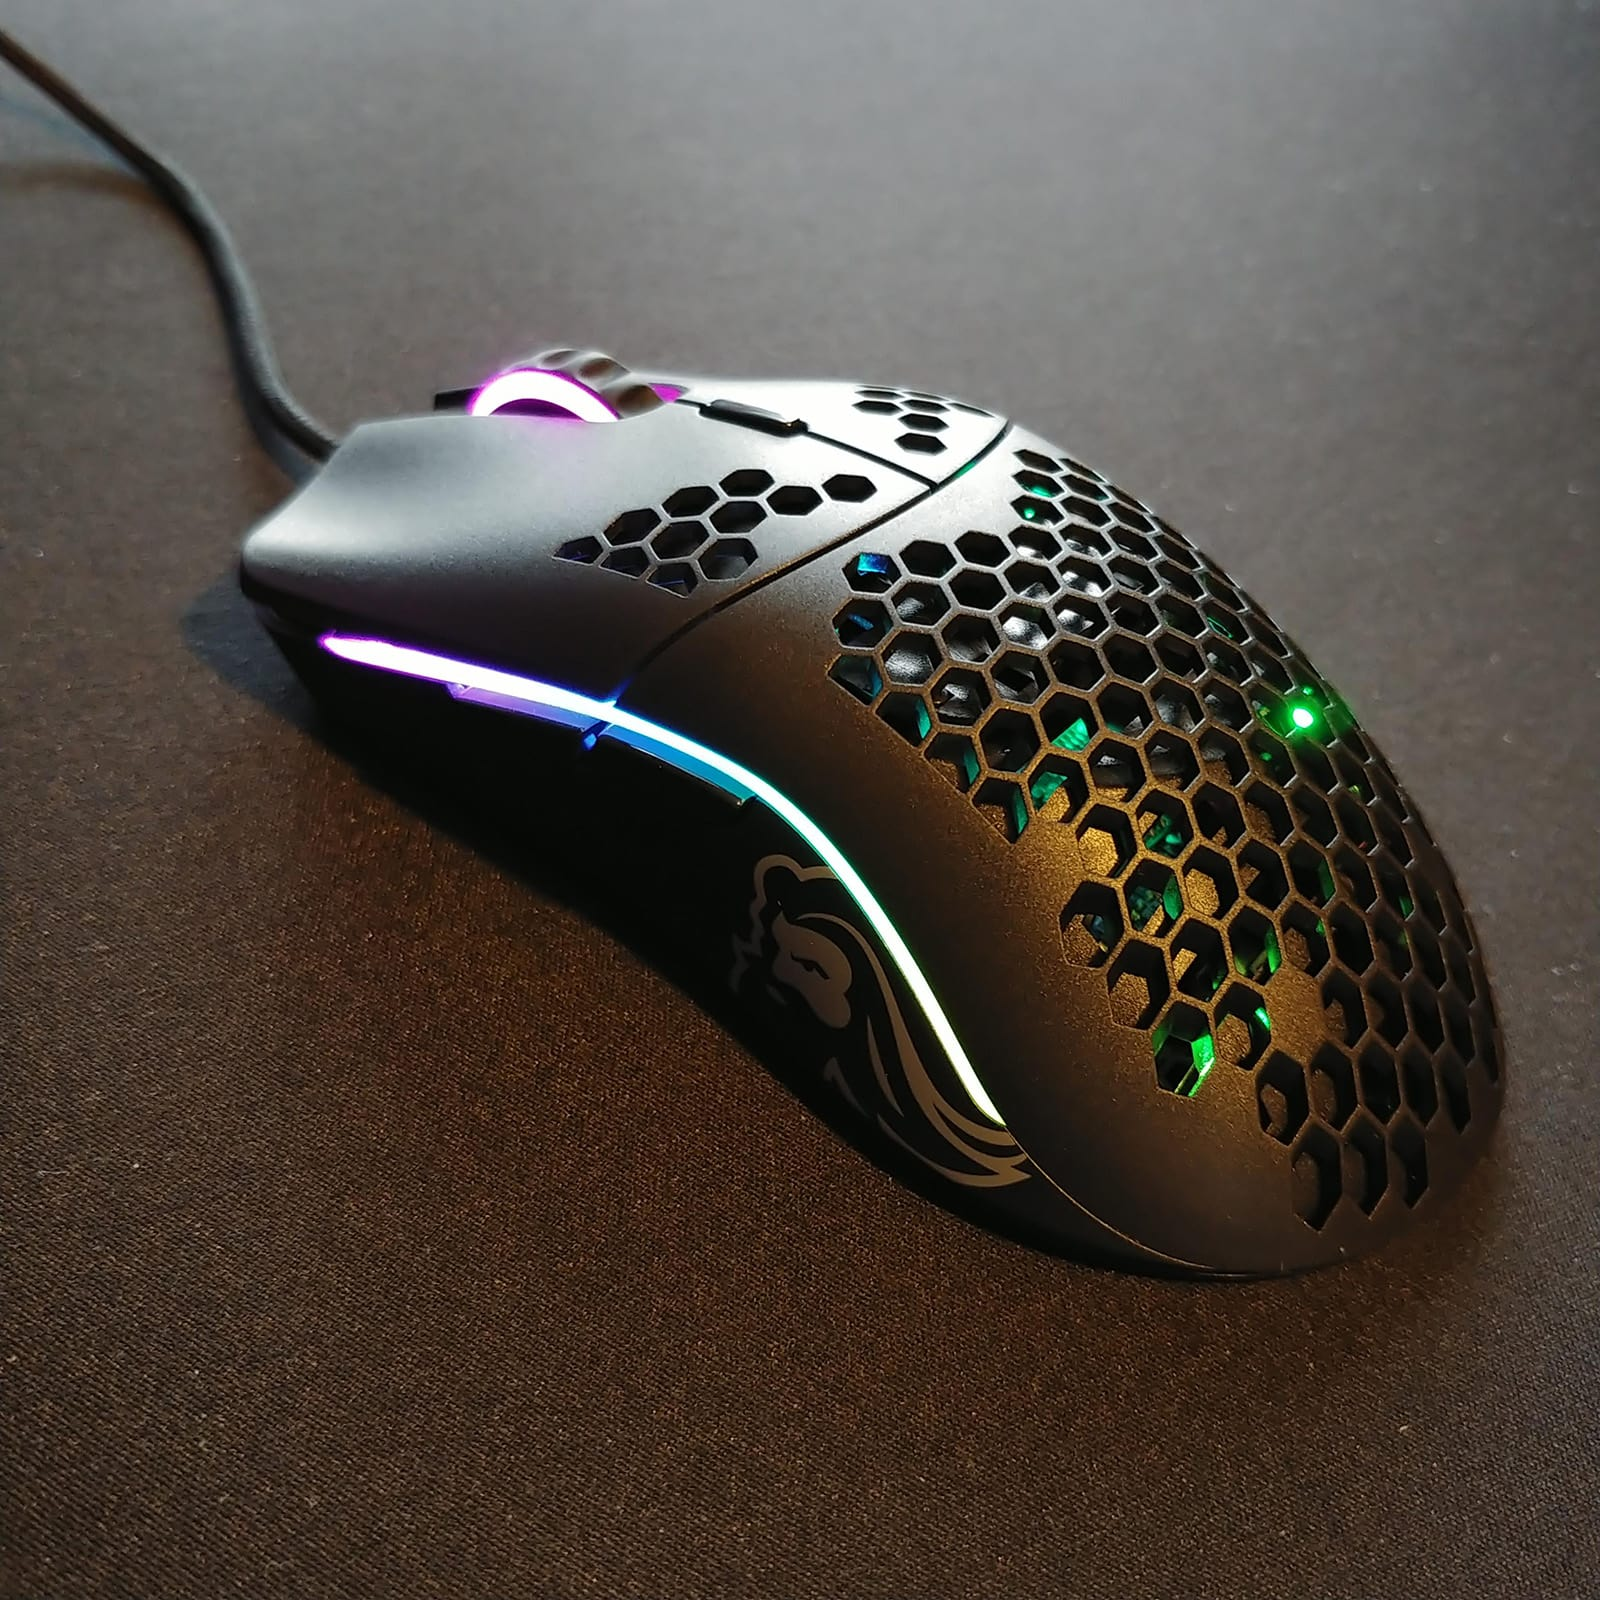 Glorious Model O- gaming mouse